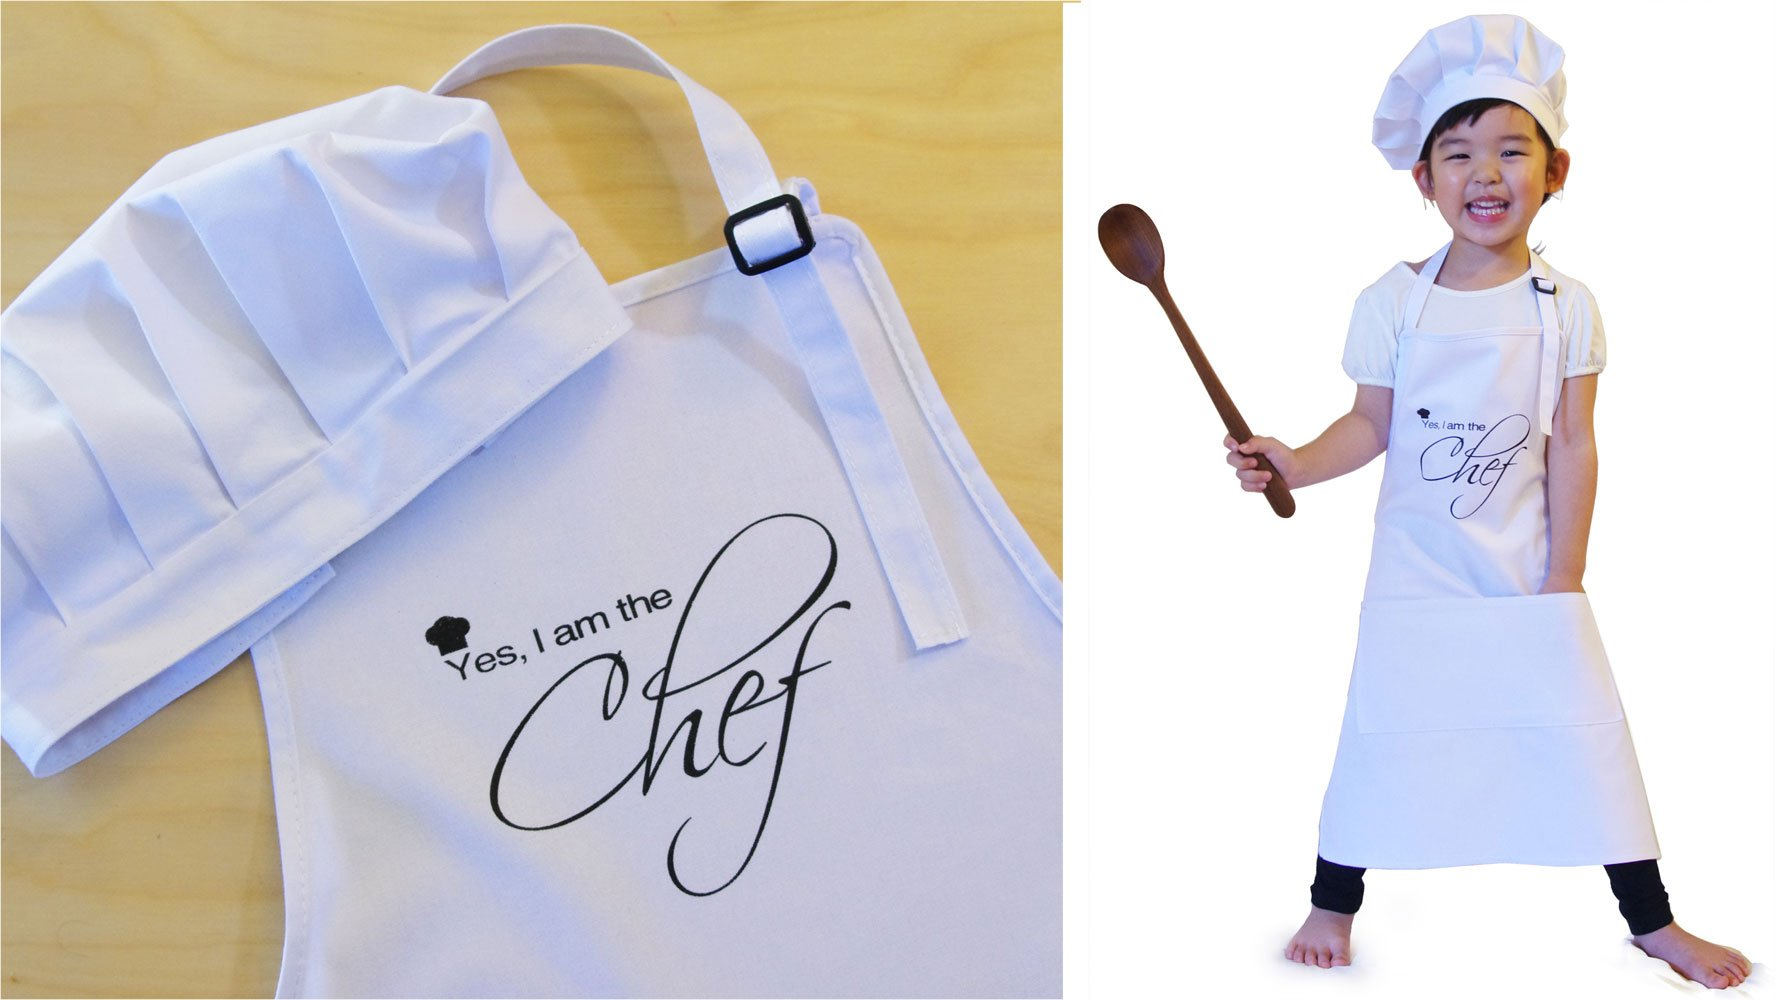 Ole Kids ''Yes, I am the Chef'' Children Apron + Chef Hat Set, White, 100% High Quality Cotton - Made For Real Kitchen Use, Fits 3-8 yrs by Drhob